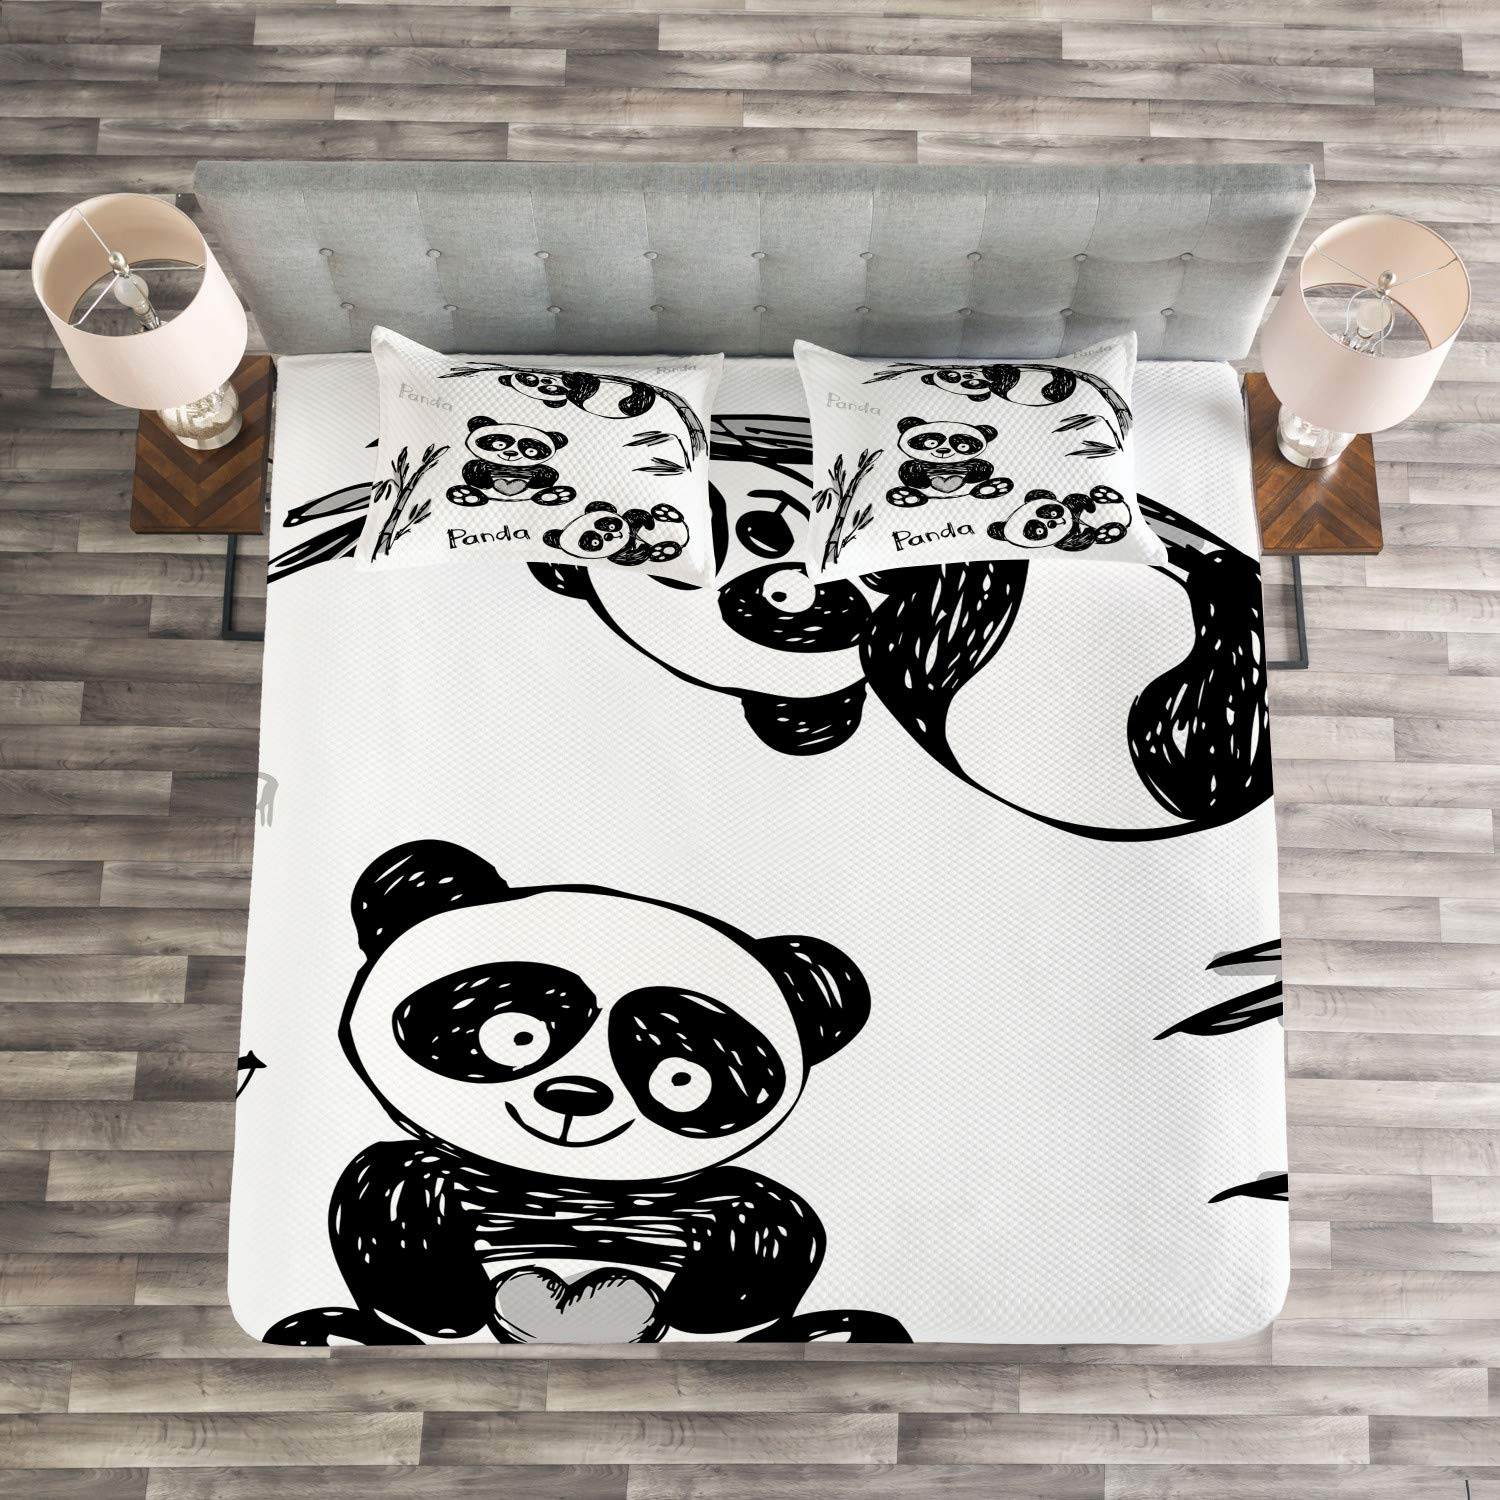 Queen Size Cheerful Animal Different Poses Bamboo Branch Children Painting Print Decorative Quilted 3 Piece Coverlet Set with 2 Pillow Shams Ambesonne Panda Bedspread Black White